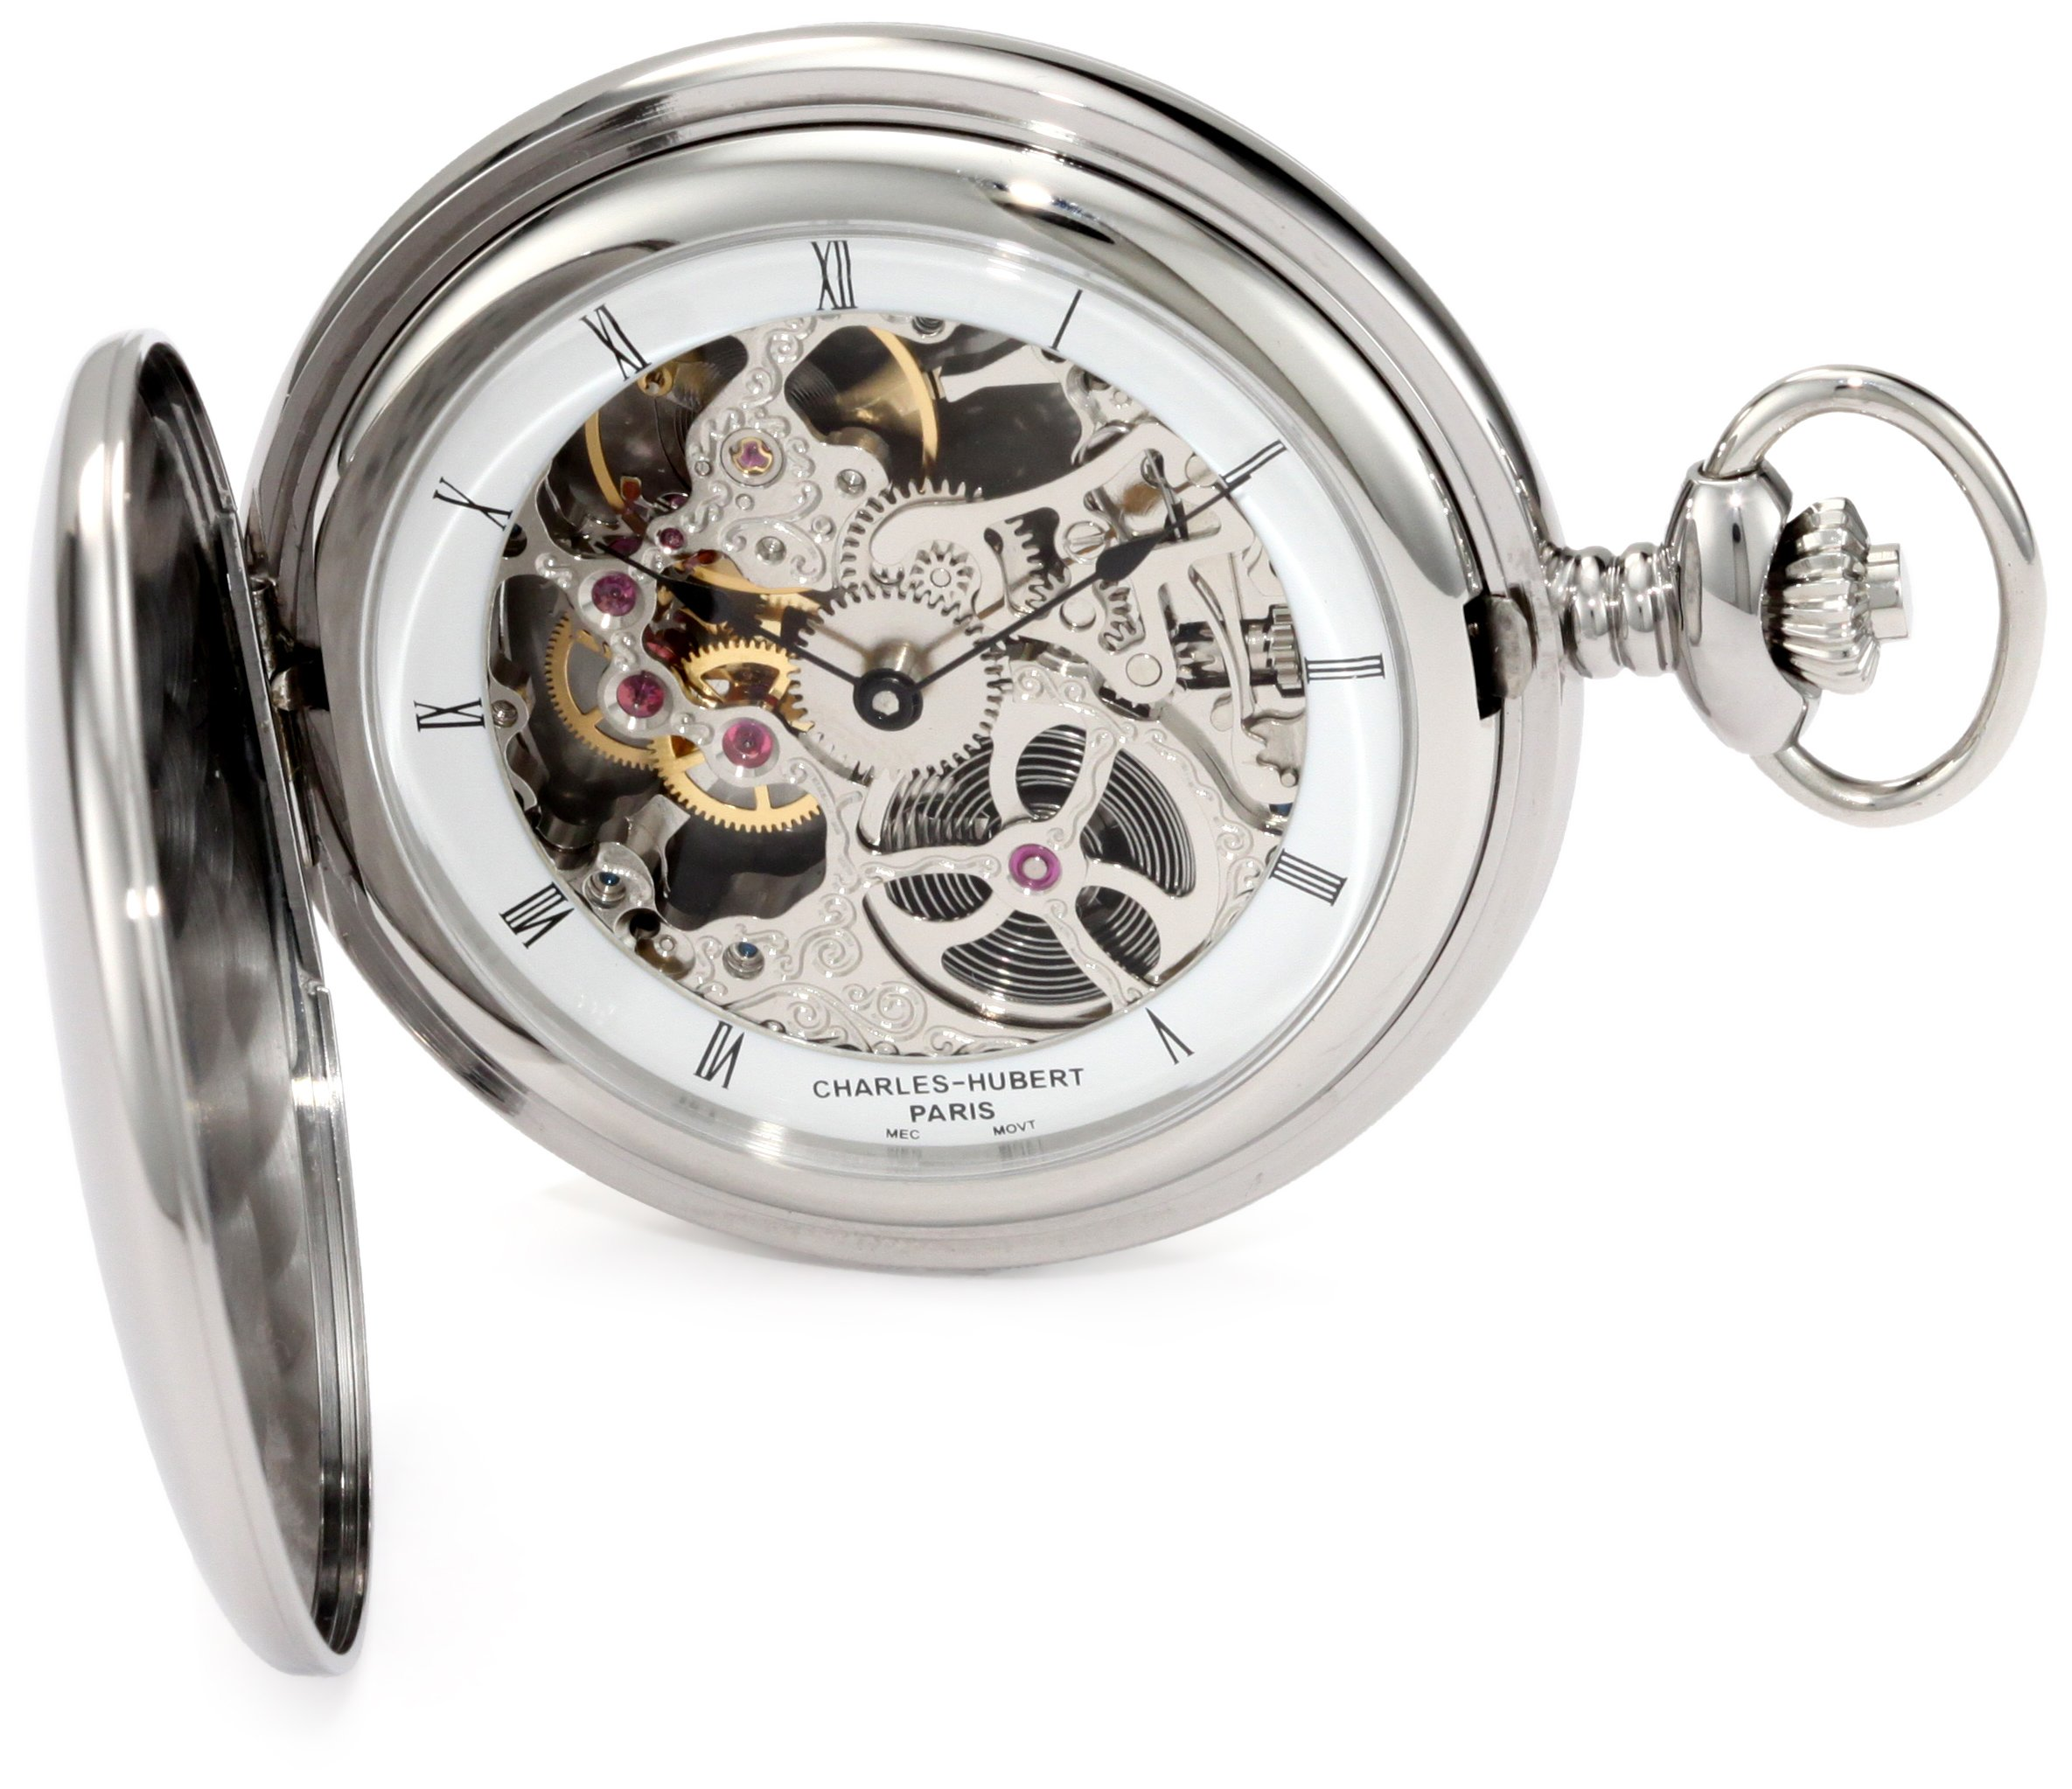 CDM product Charles-Hubert, Paris 3905-W Premium Collection Stainless Steel Polished Finish Hunter Case Mechanical Pocket Watch big image